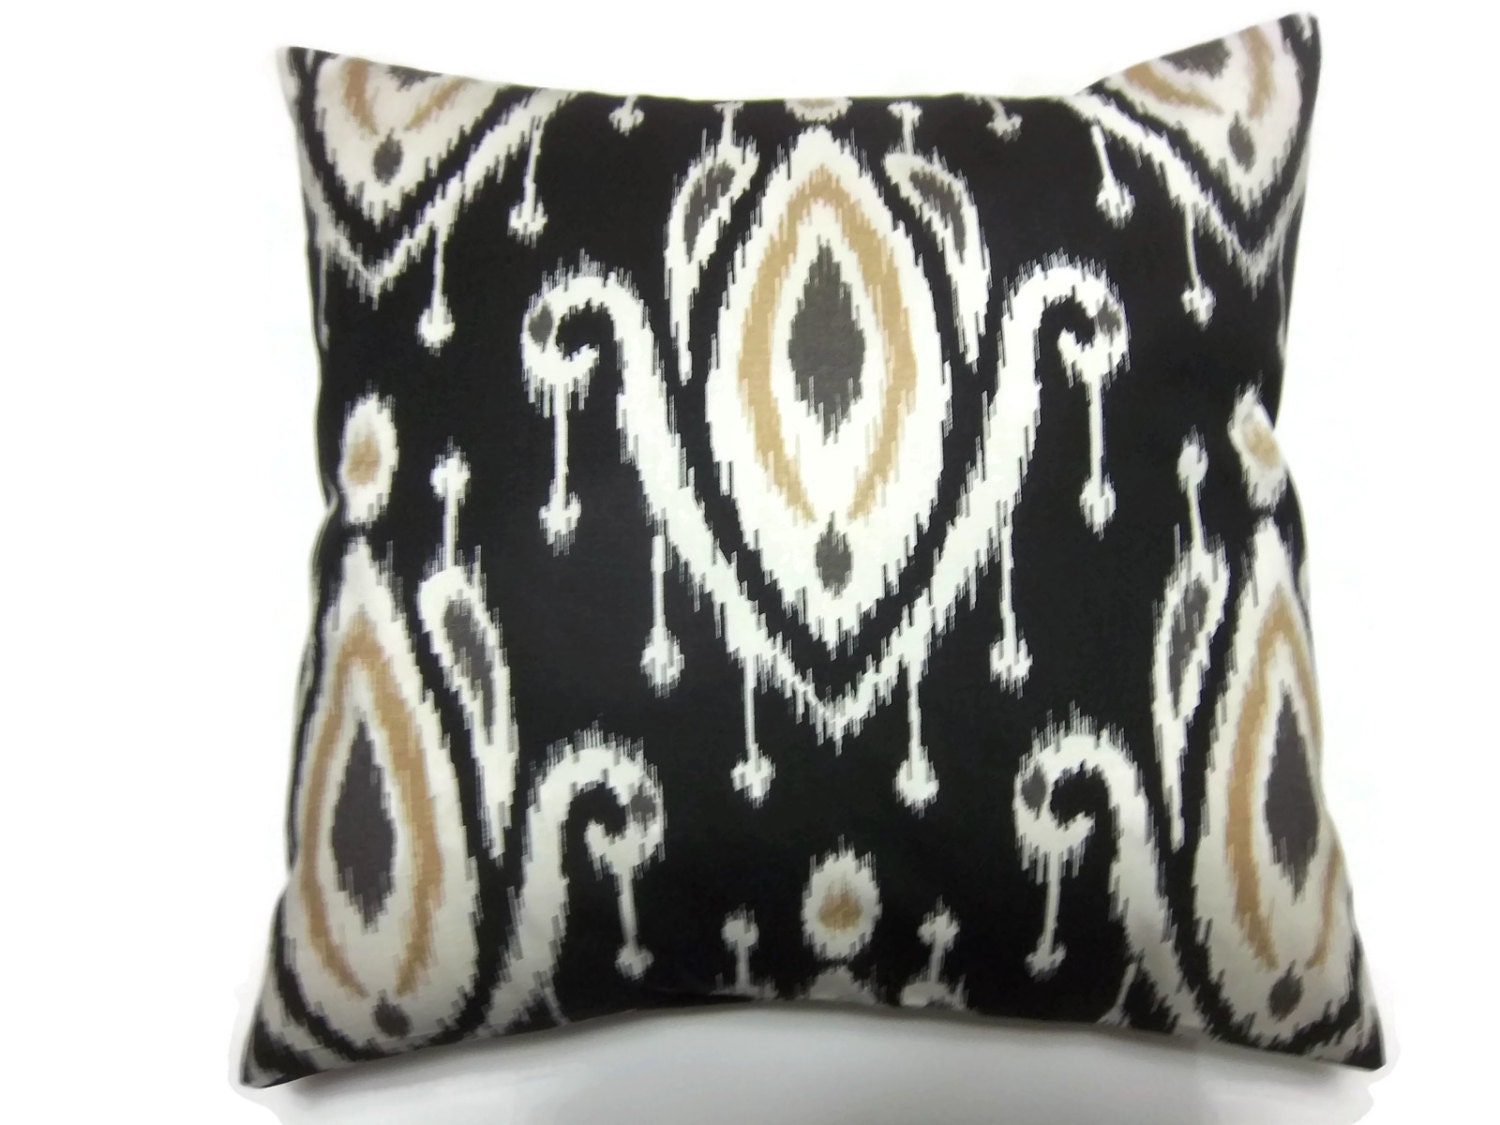 Throw Pillow Cover Designs : Decorative Pillow Cover Ikat Design Black White Camel Gray